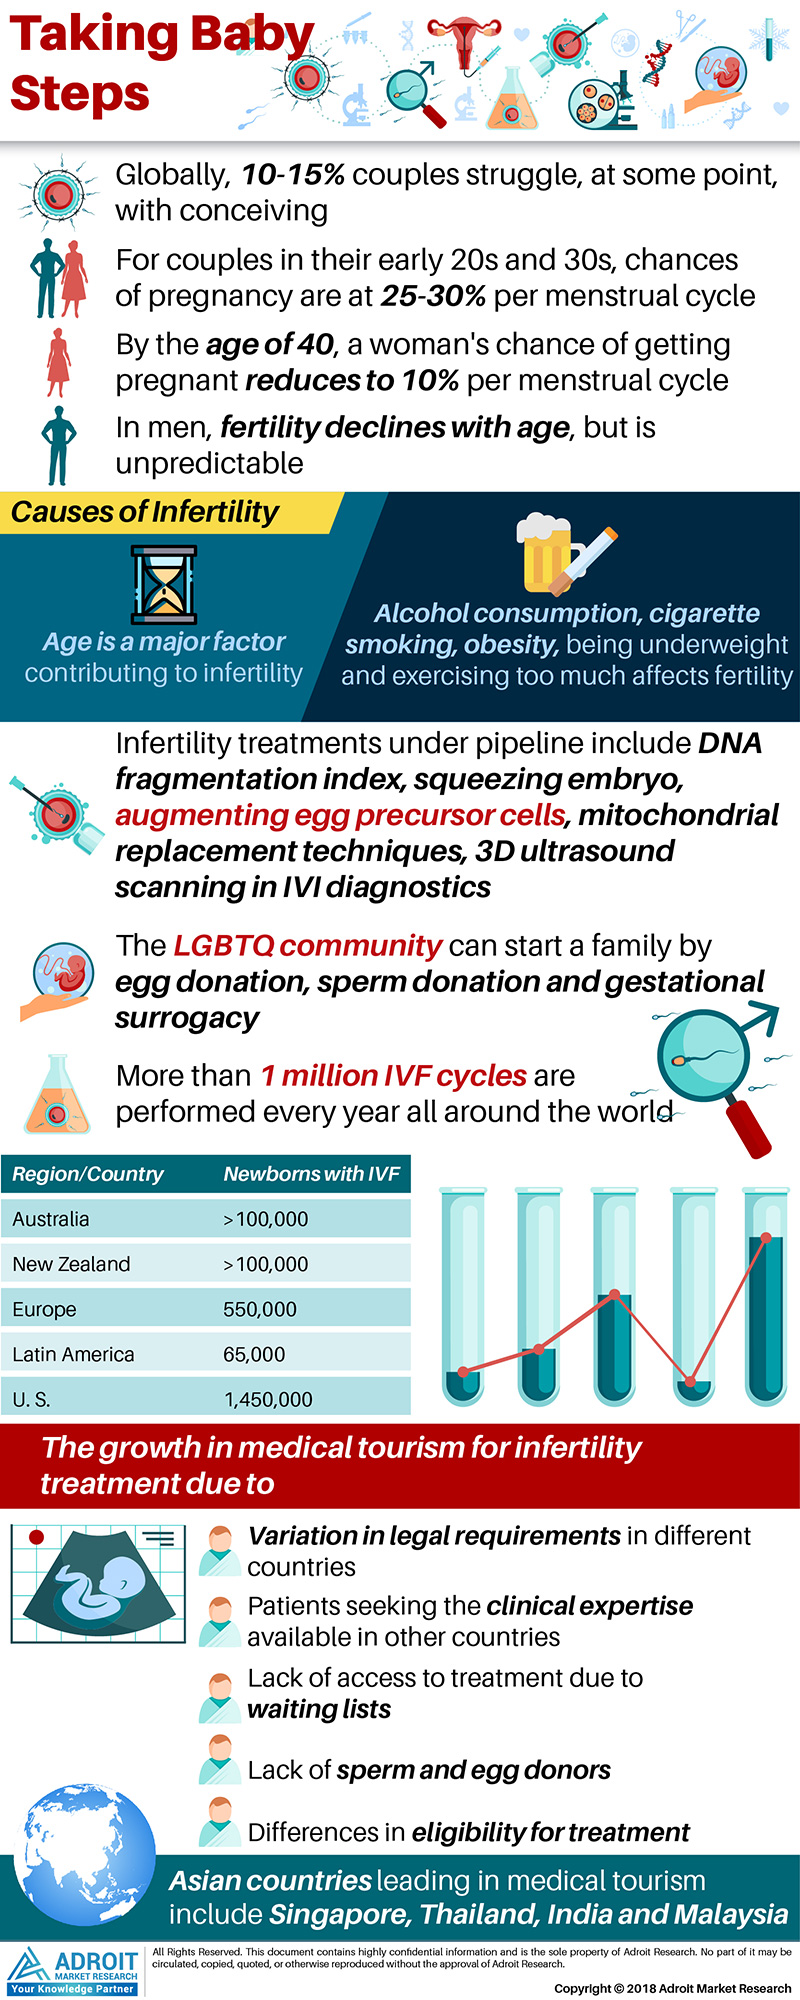 Global Infertility Treatment Market Size 2017 By Region and Forecast 2018 to 2025